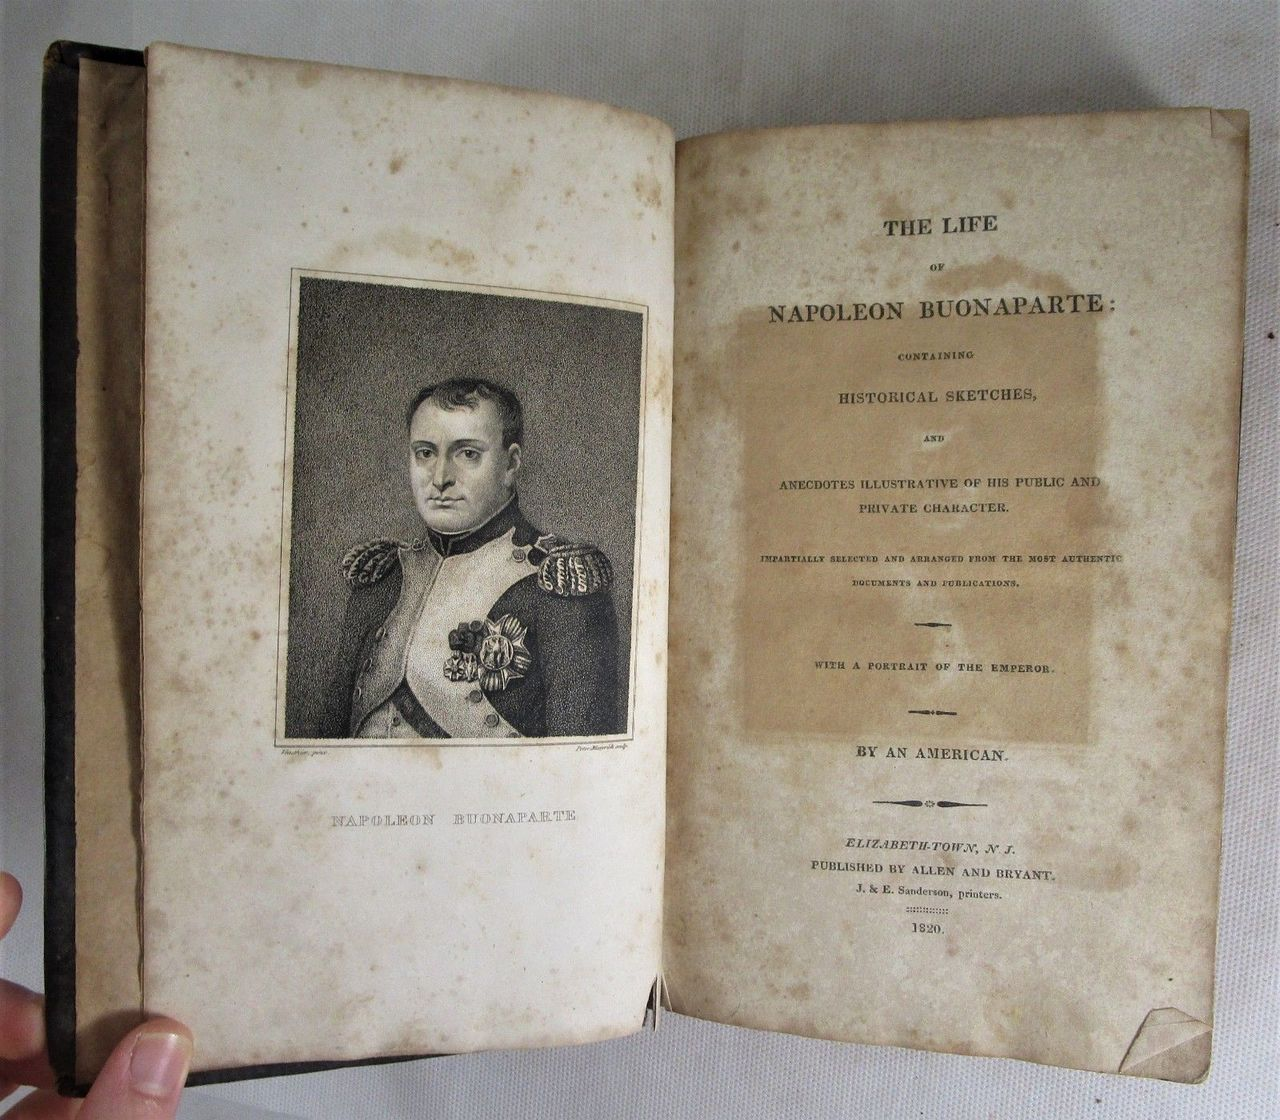 THE LIFE OF NAPOLEON BUONAPARTE, by an American - 1820